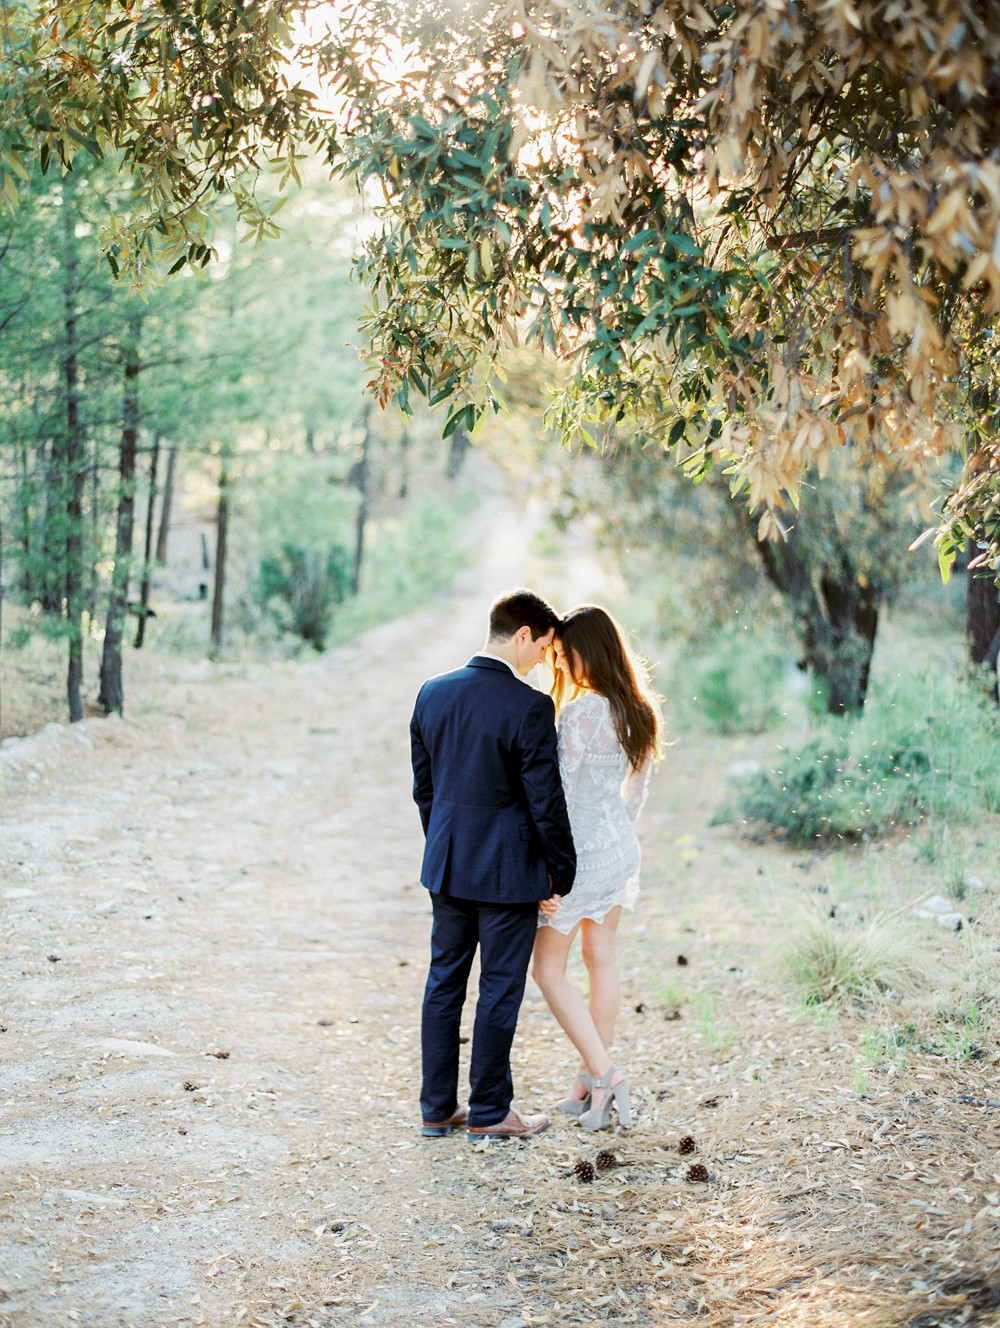 Kiley and Ty's Classic Engagement Session